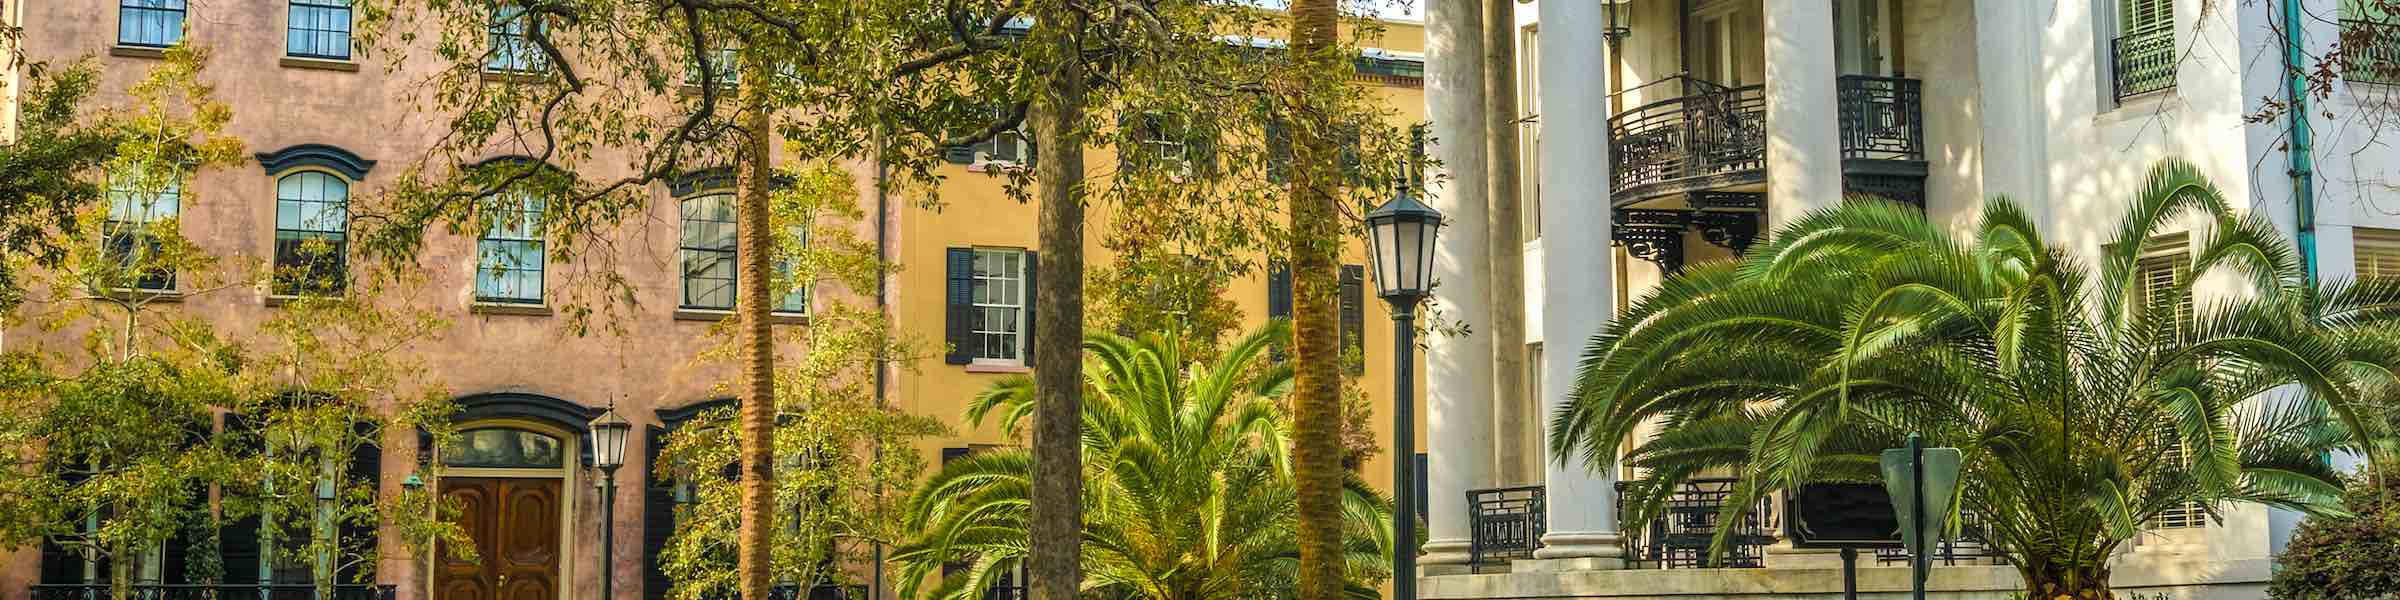 The Philbrick-Eastman House and other buildings surrounding Chippewa Square, Savannah, GA.